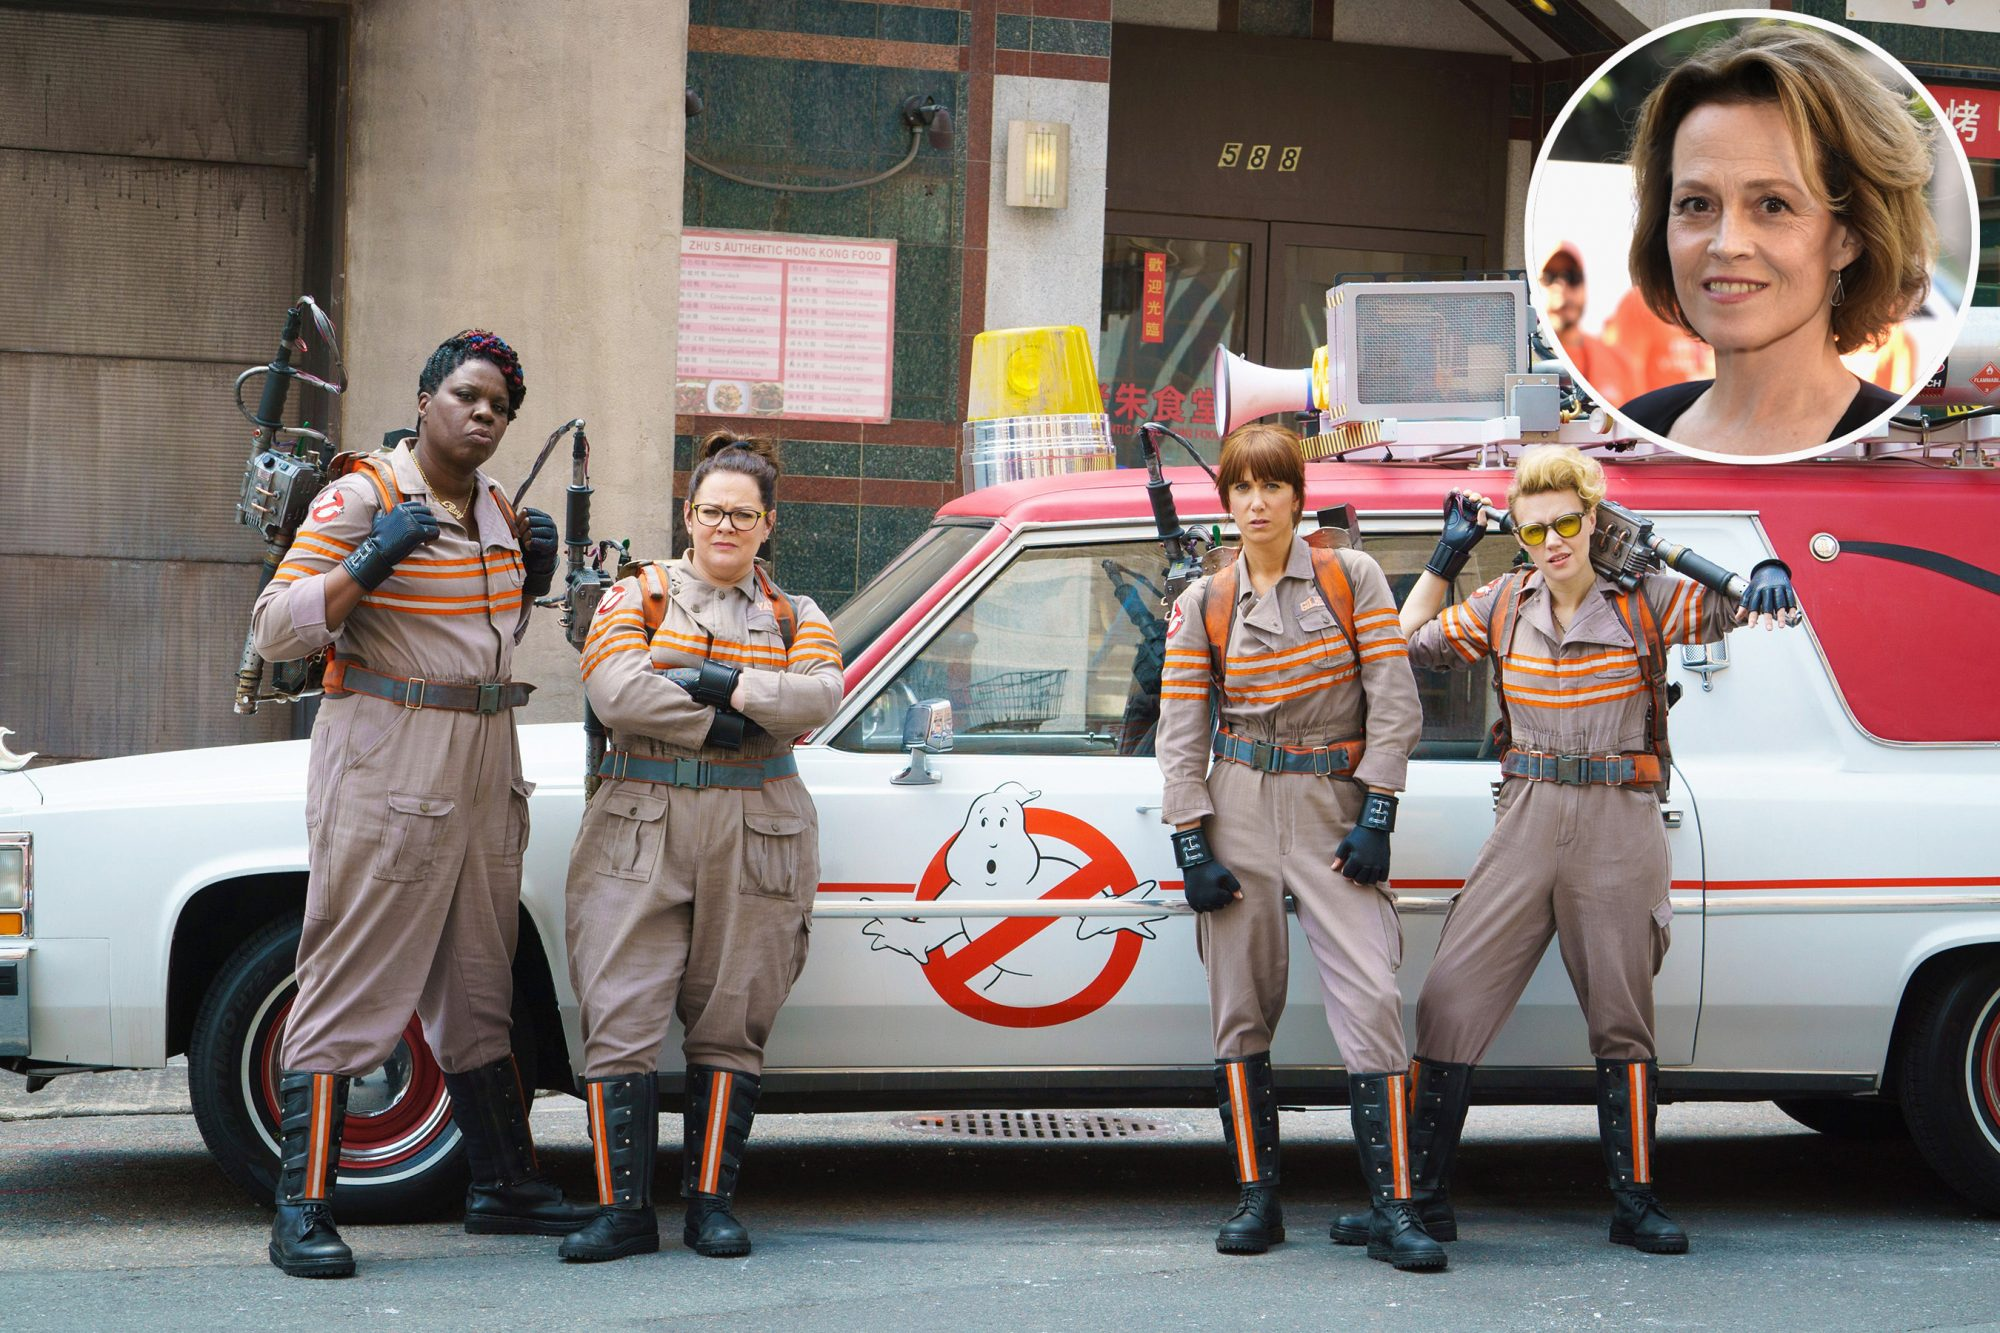 GHOSTBUSTERS, from left: Leslie Jones, Melissa McCarthy, Kristen Wiig, Kate McKinnon; background: